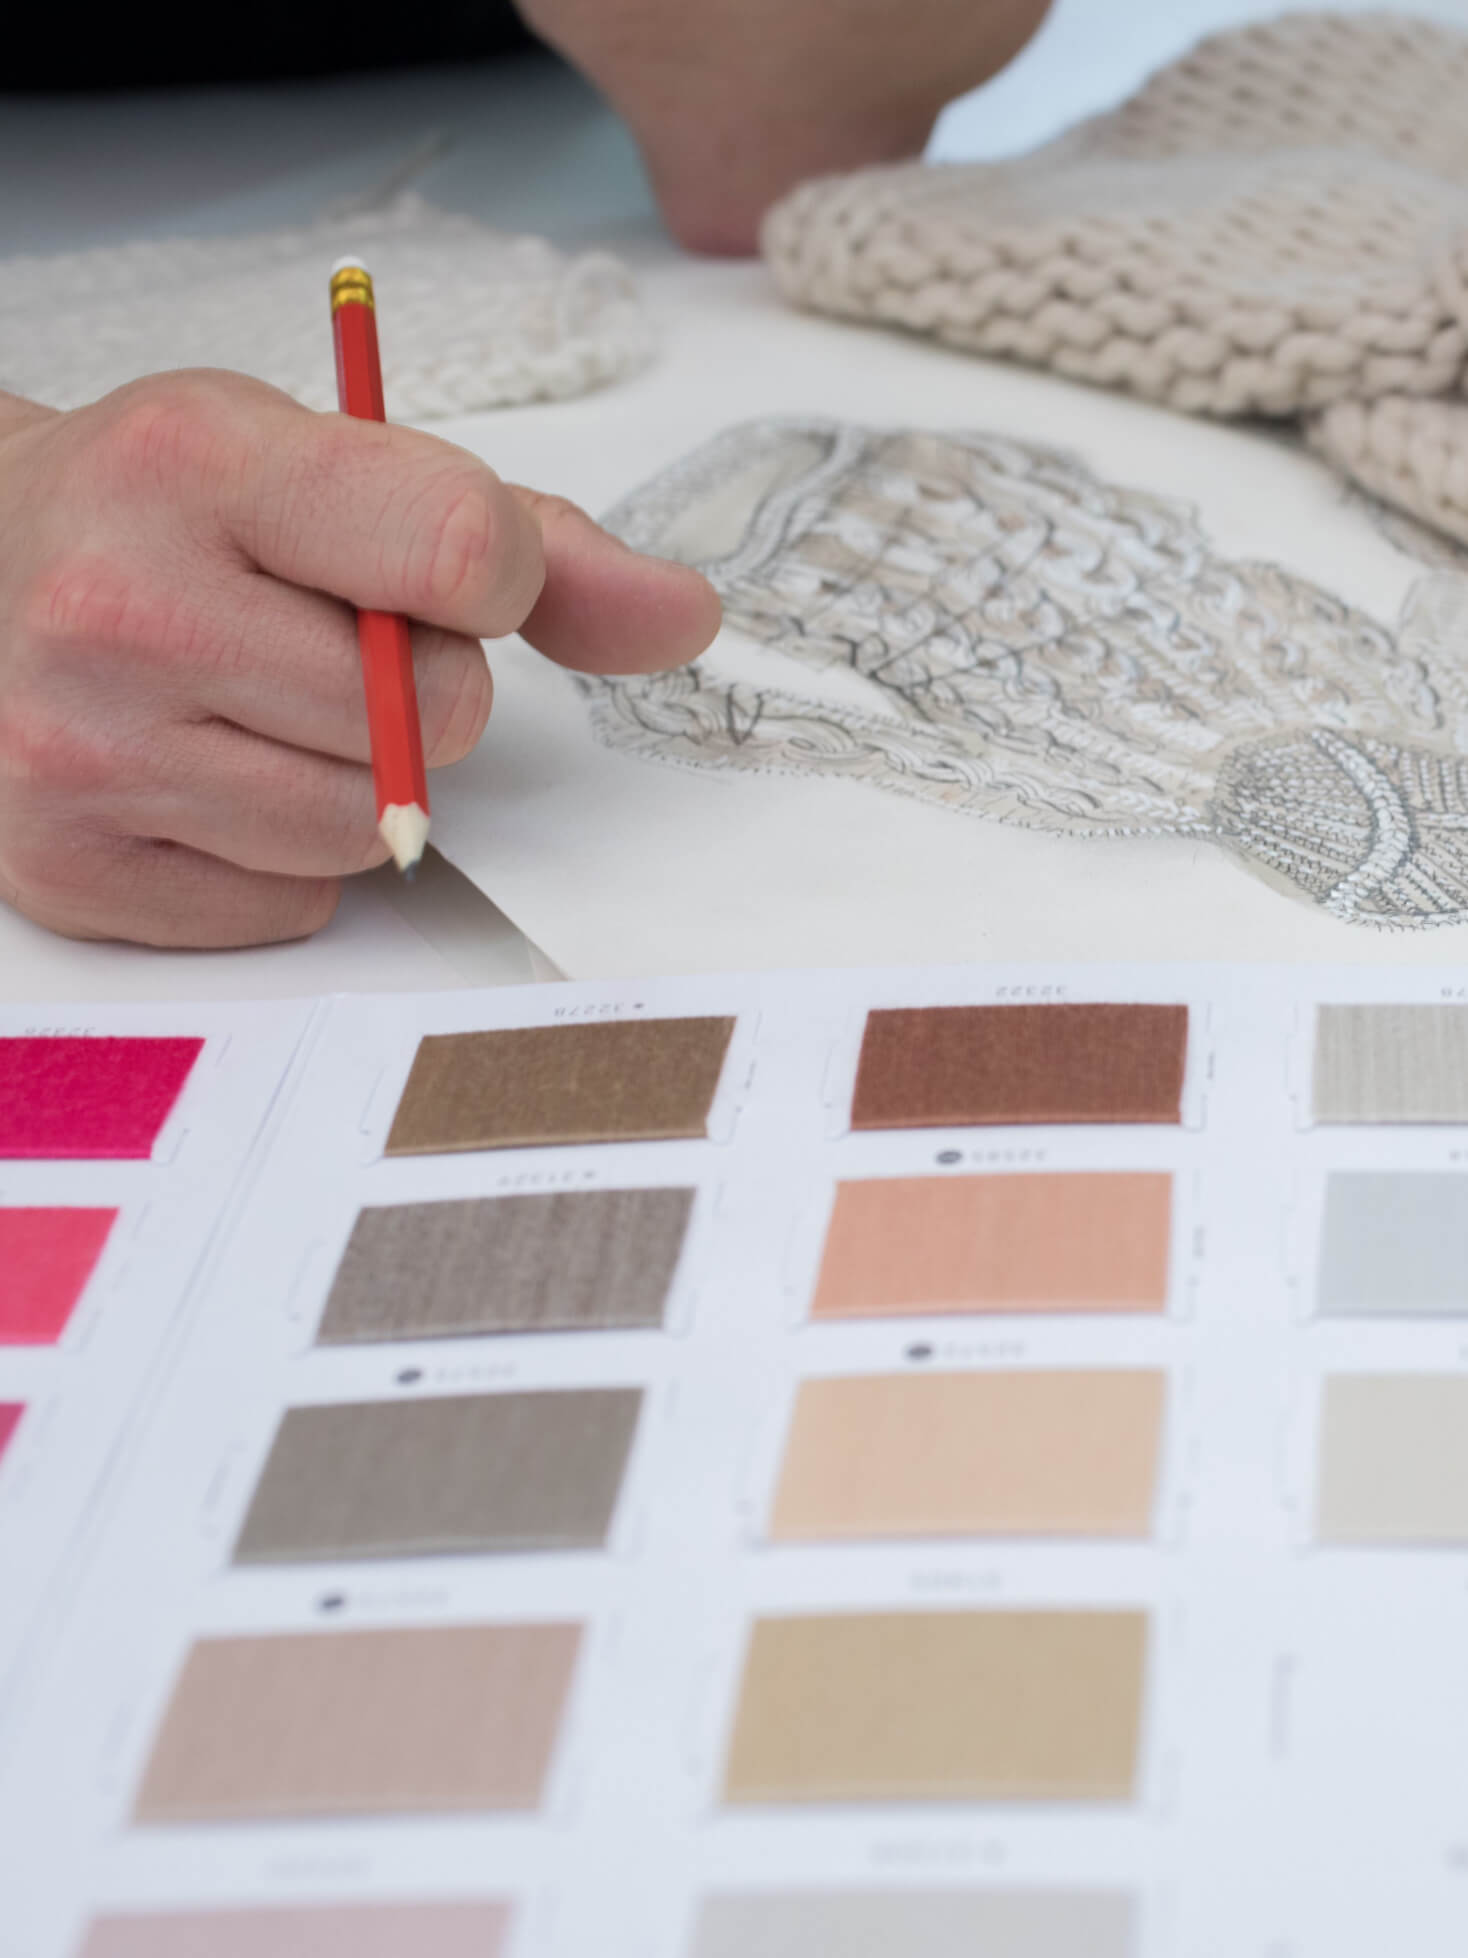 Johnstons of Elgin designers choosing the perfect hues